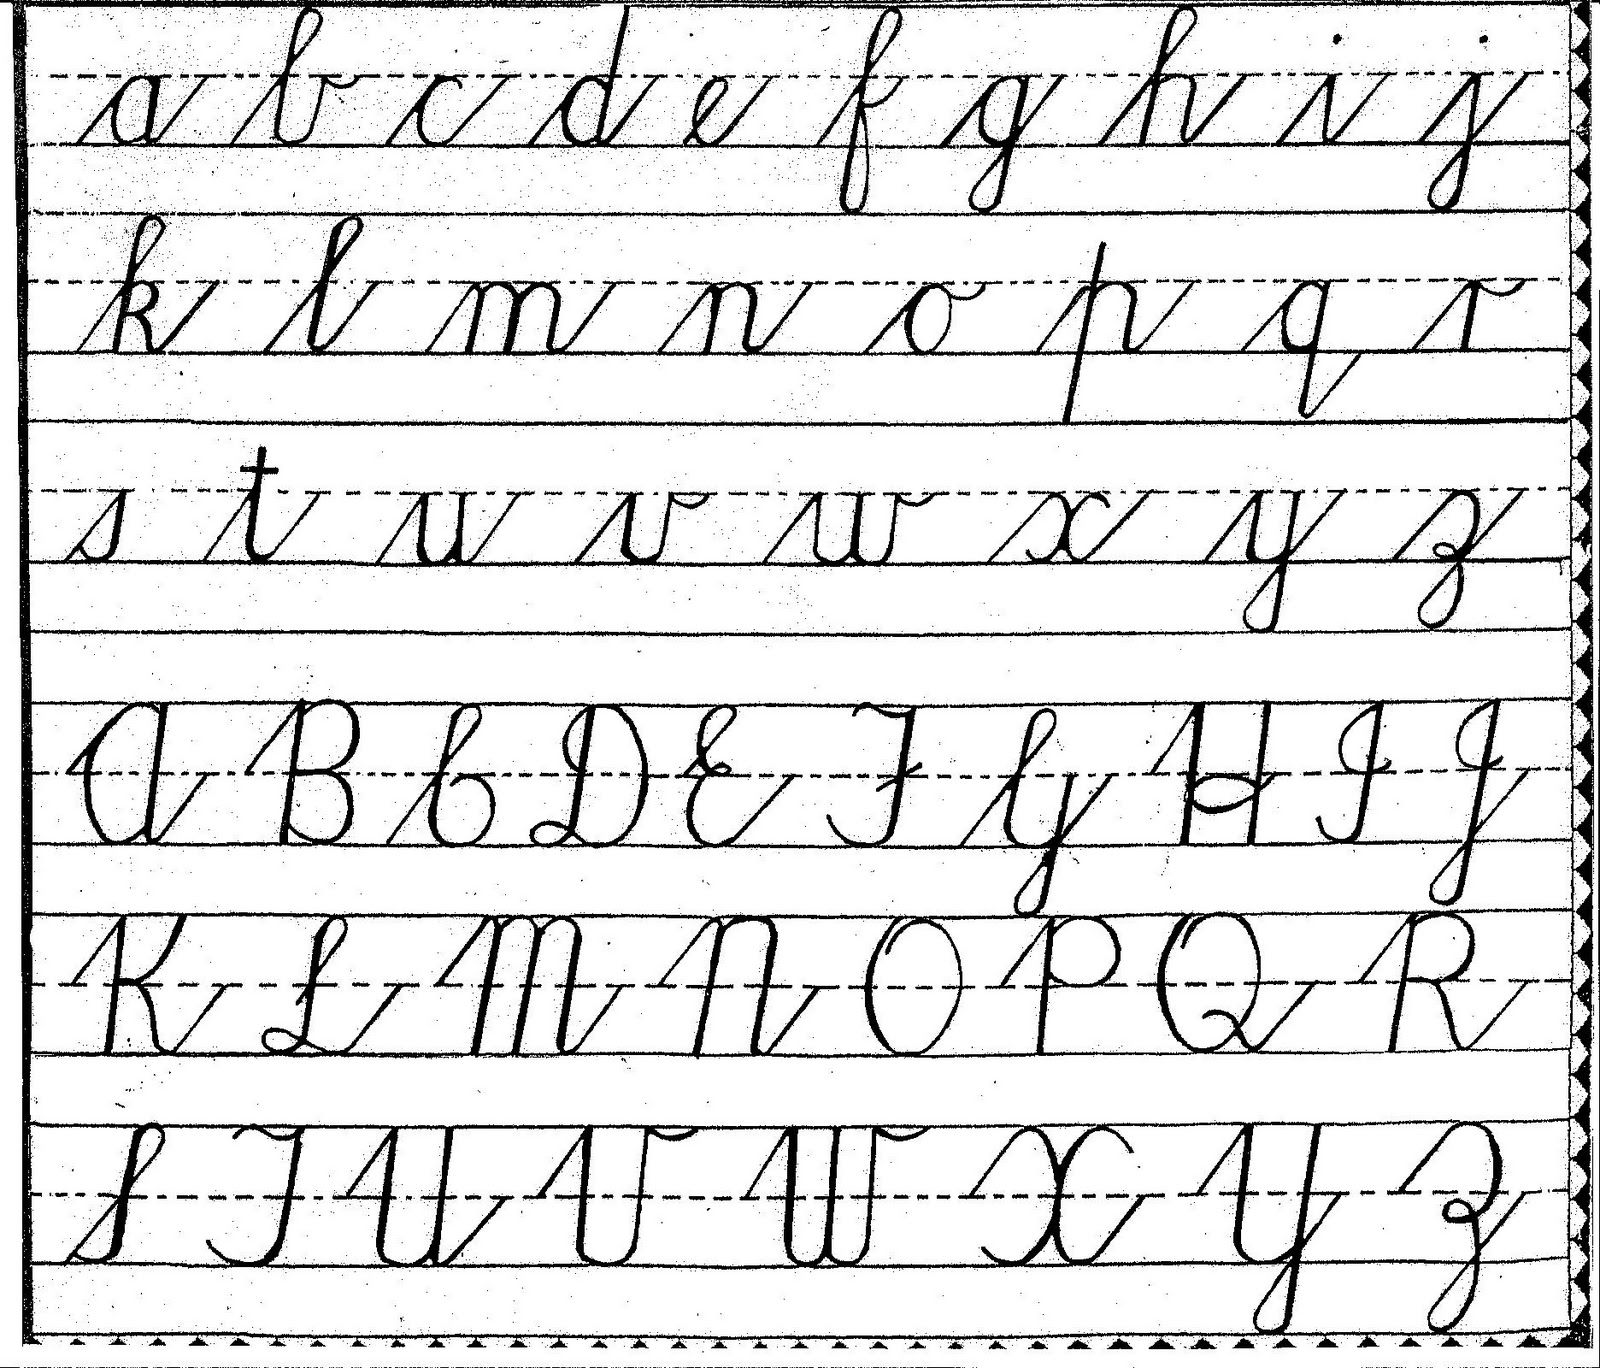 Worksheets D Nealian Handwriting Practice Worksheets collection of free cursive handwriting from all over the world worksheets for kids